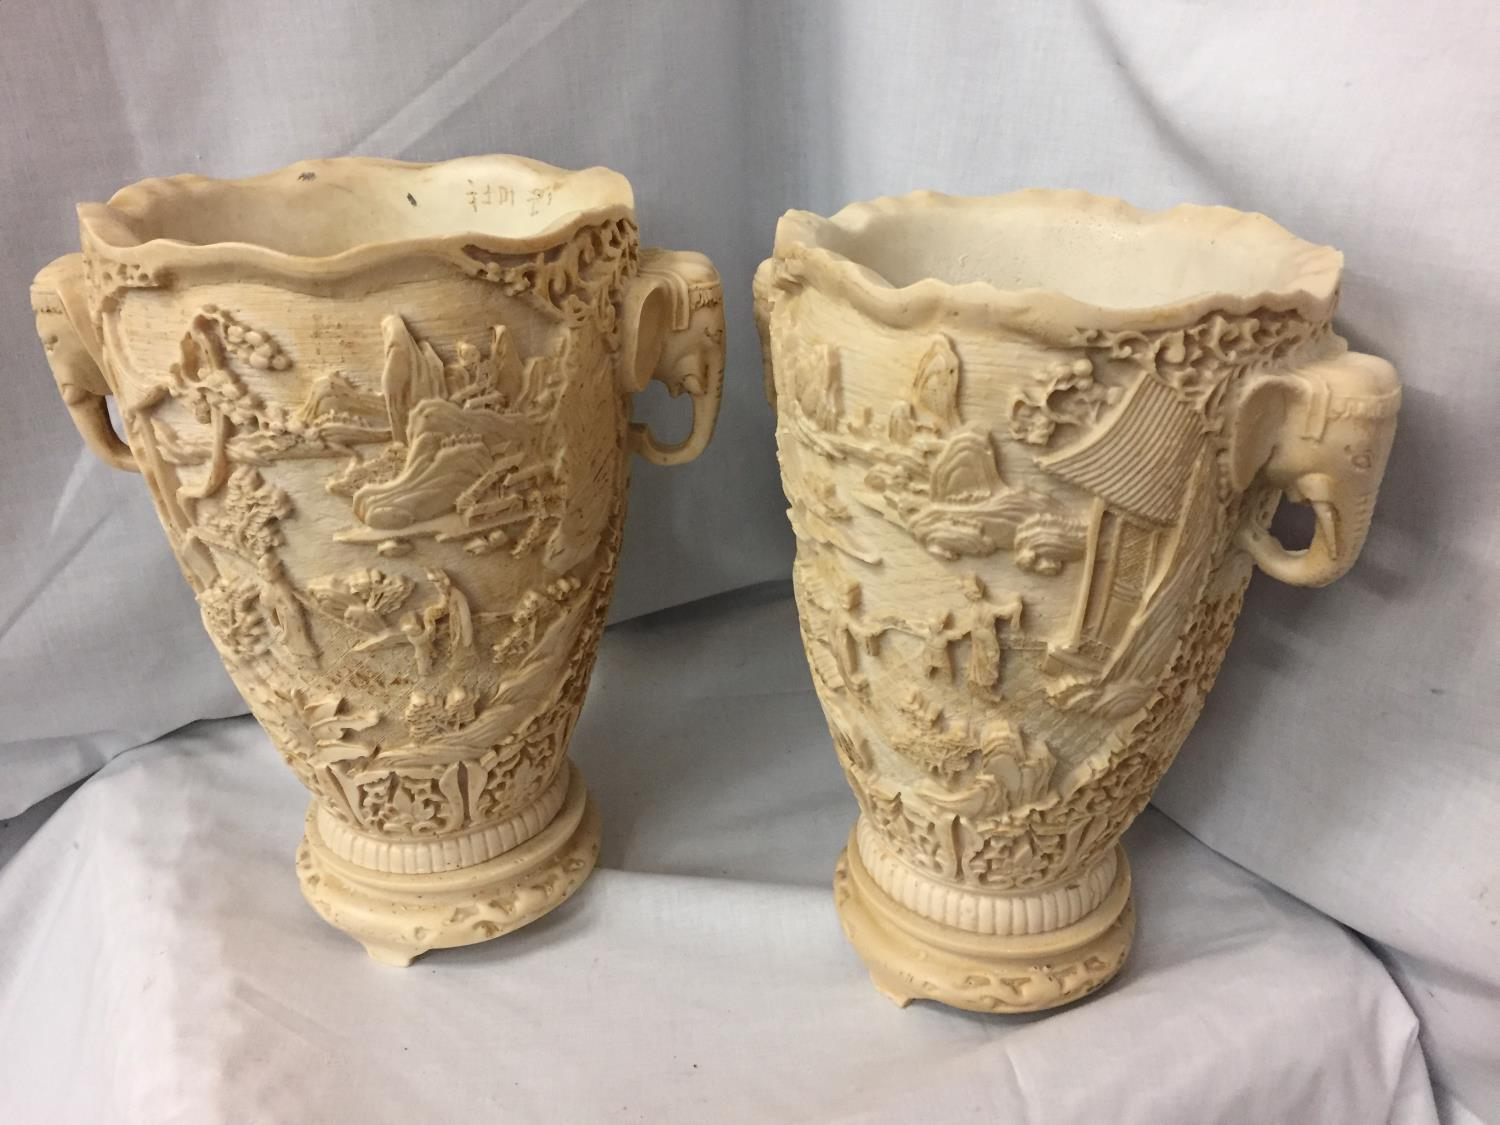 A PAIR OF HEAVILY CARVED ORIENTAL VASES WITH ELEPHANT DESIGN TWIN HANDLES 30CM HIGH - Image 4 of 6